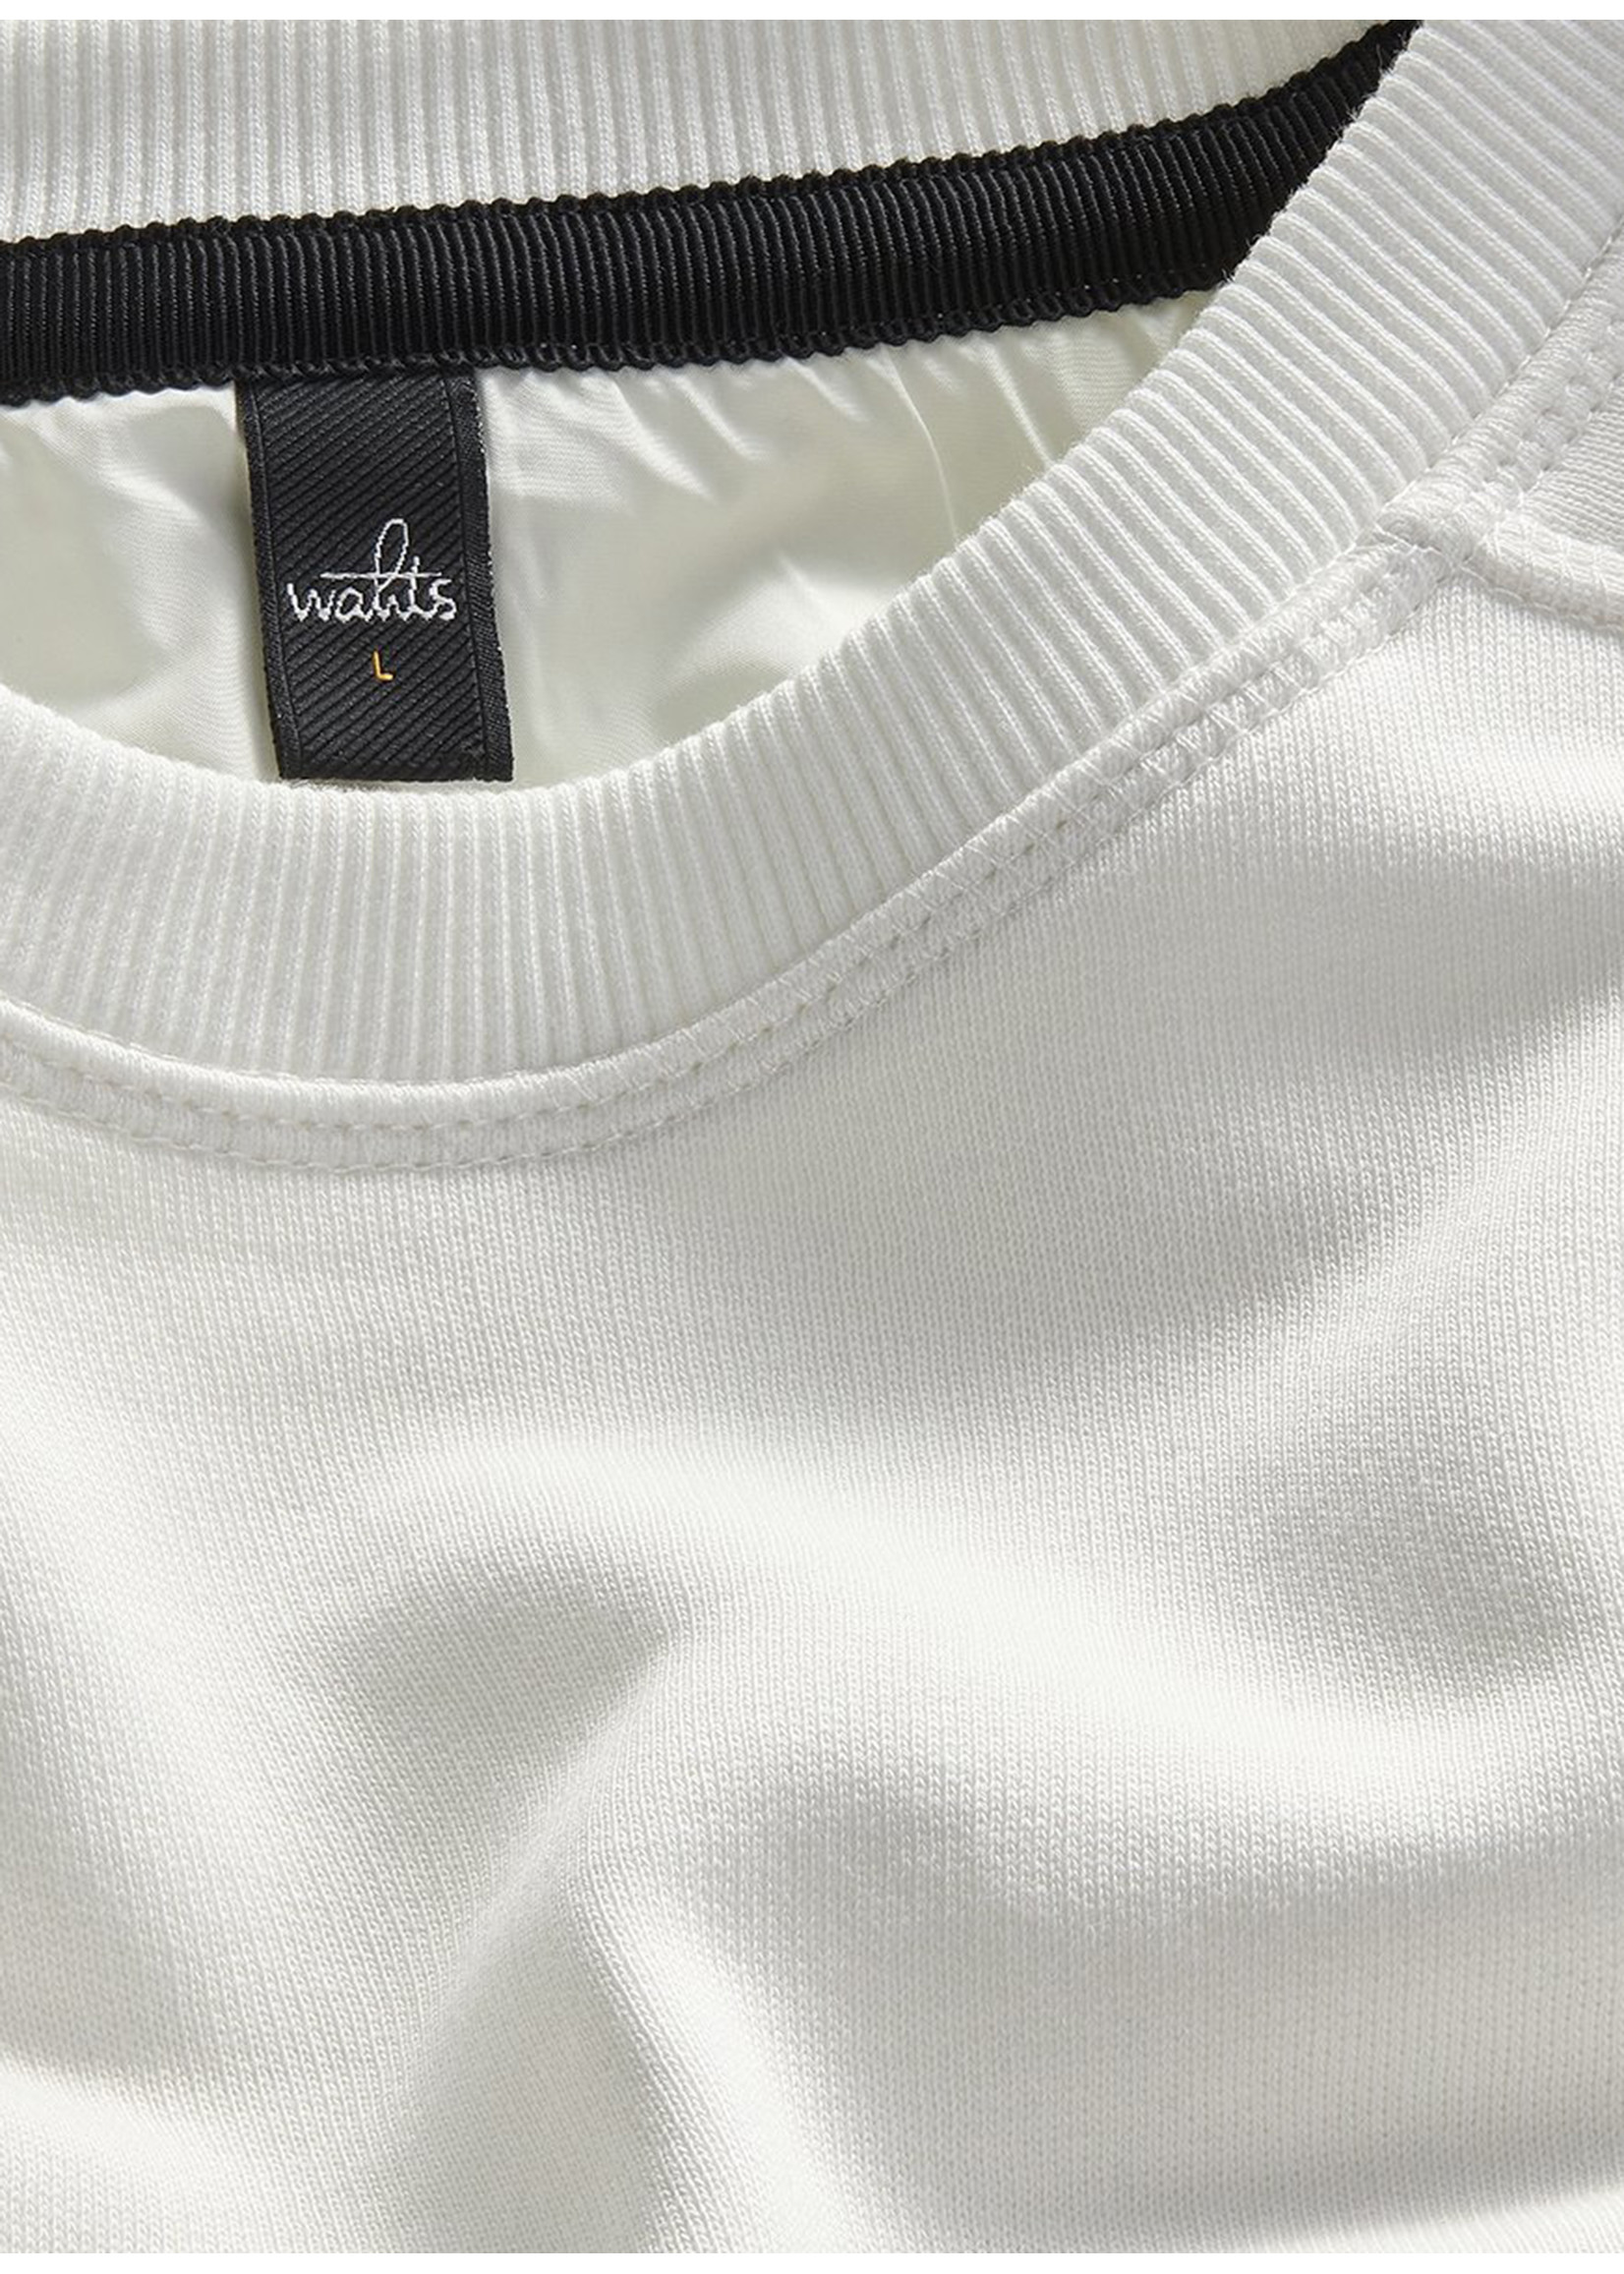 Wahts Moore crewneck sweater off white